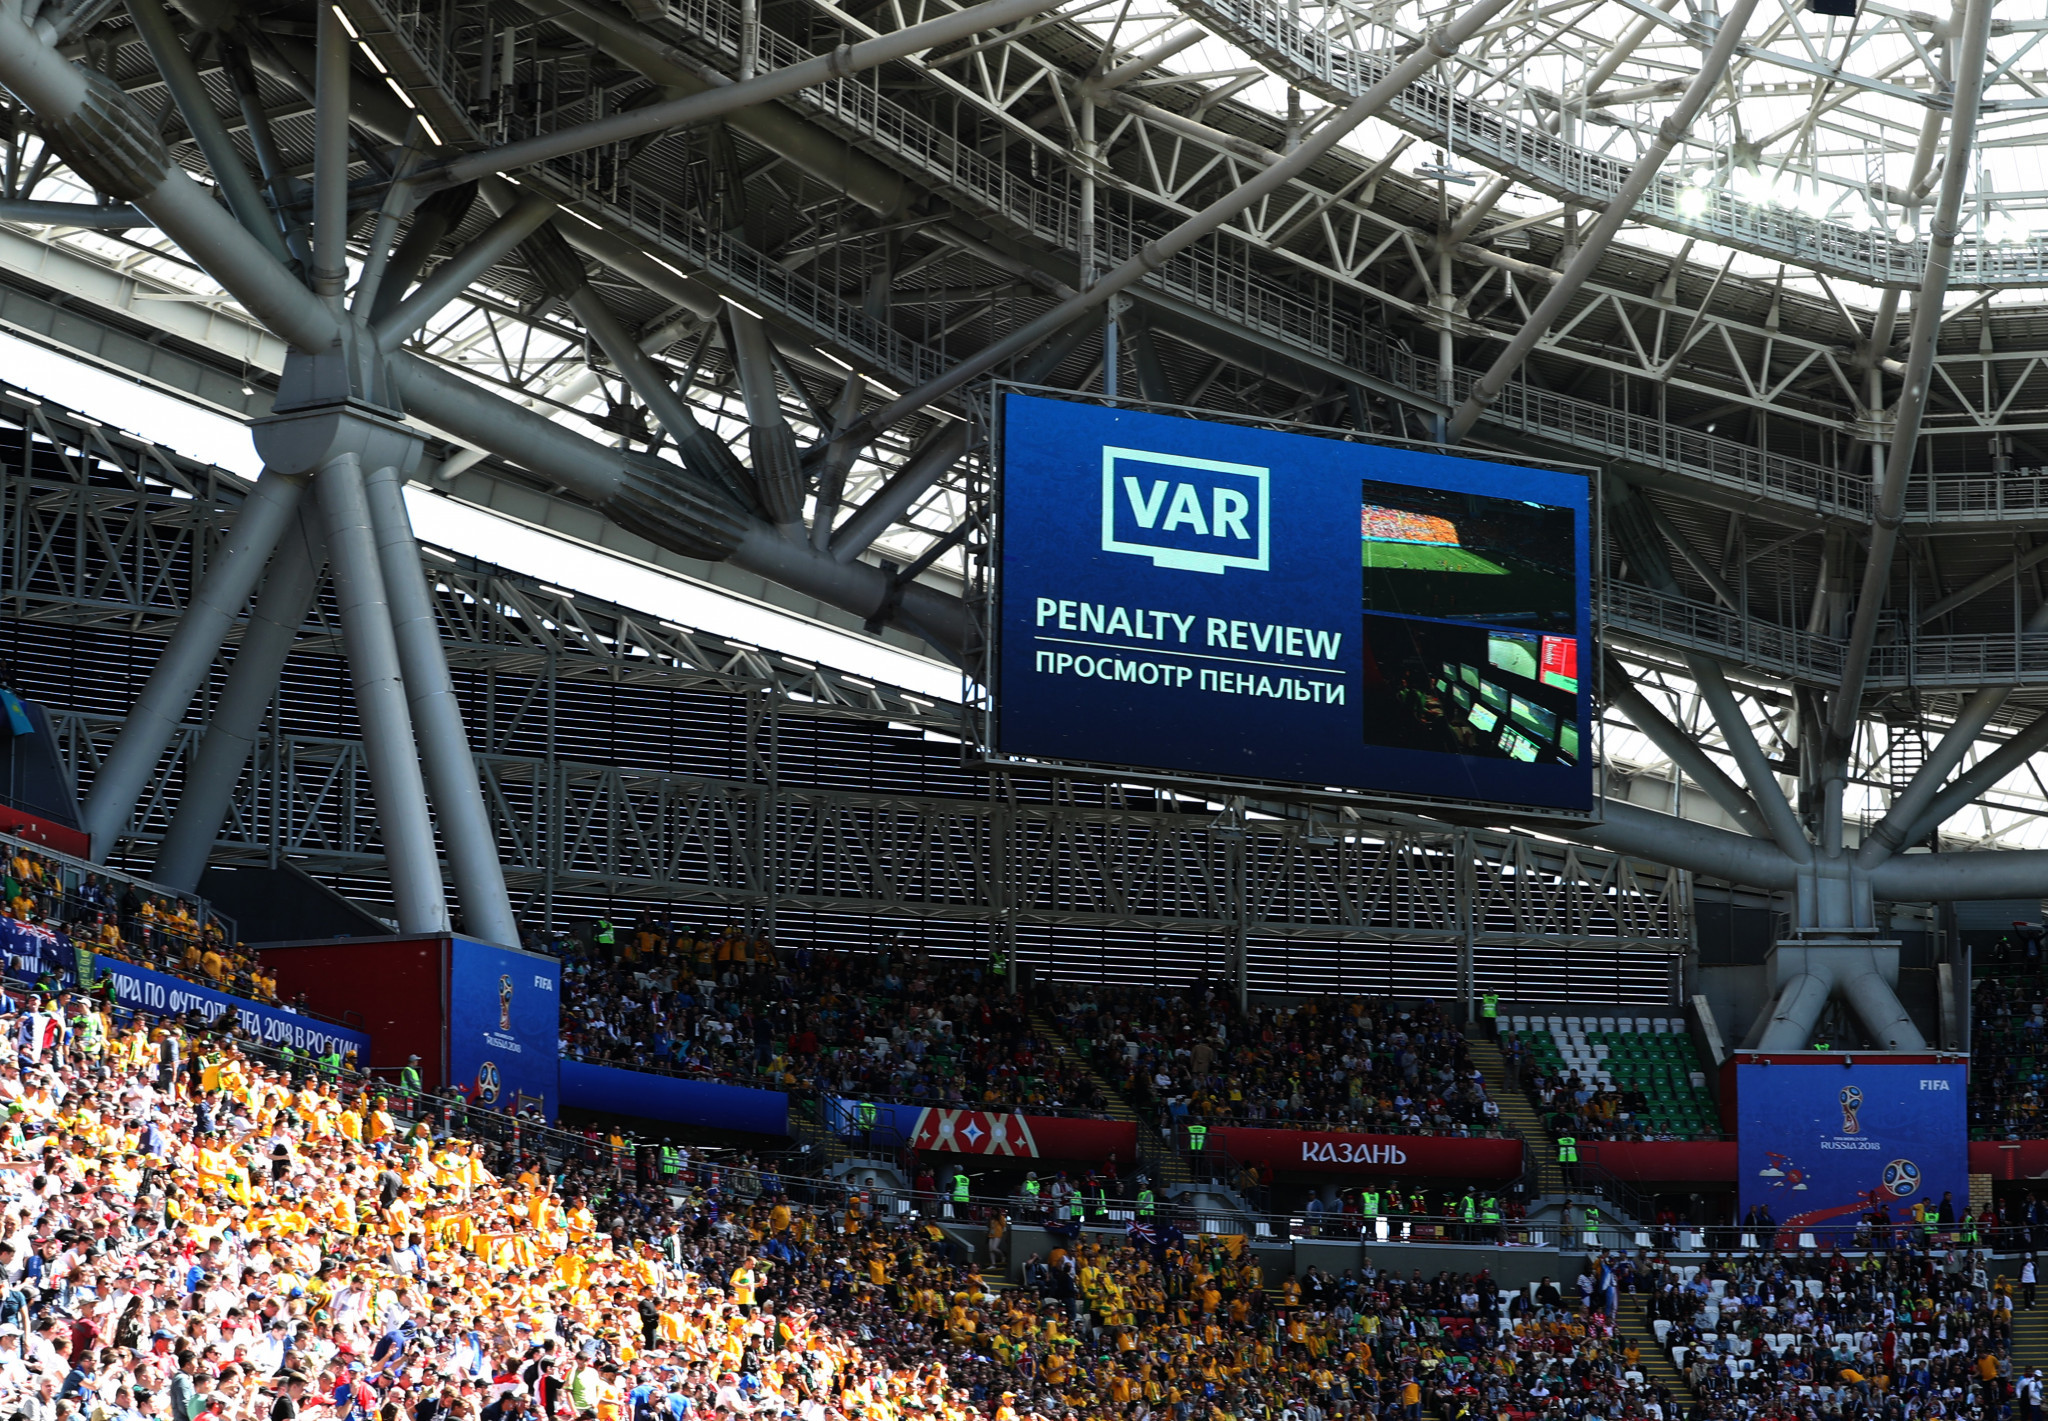 VAR technology was used to award France a penalty against Australia ©Getty Images